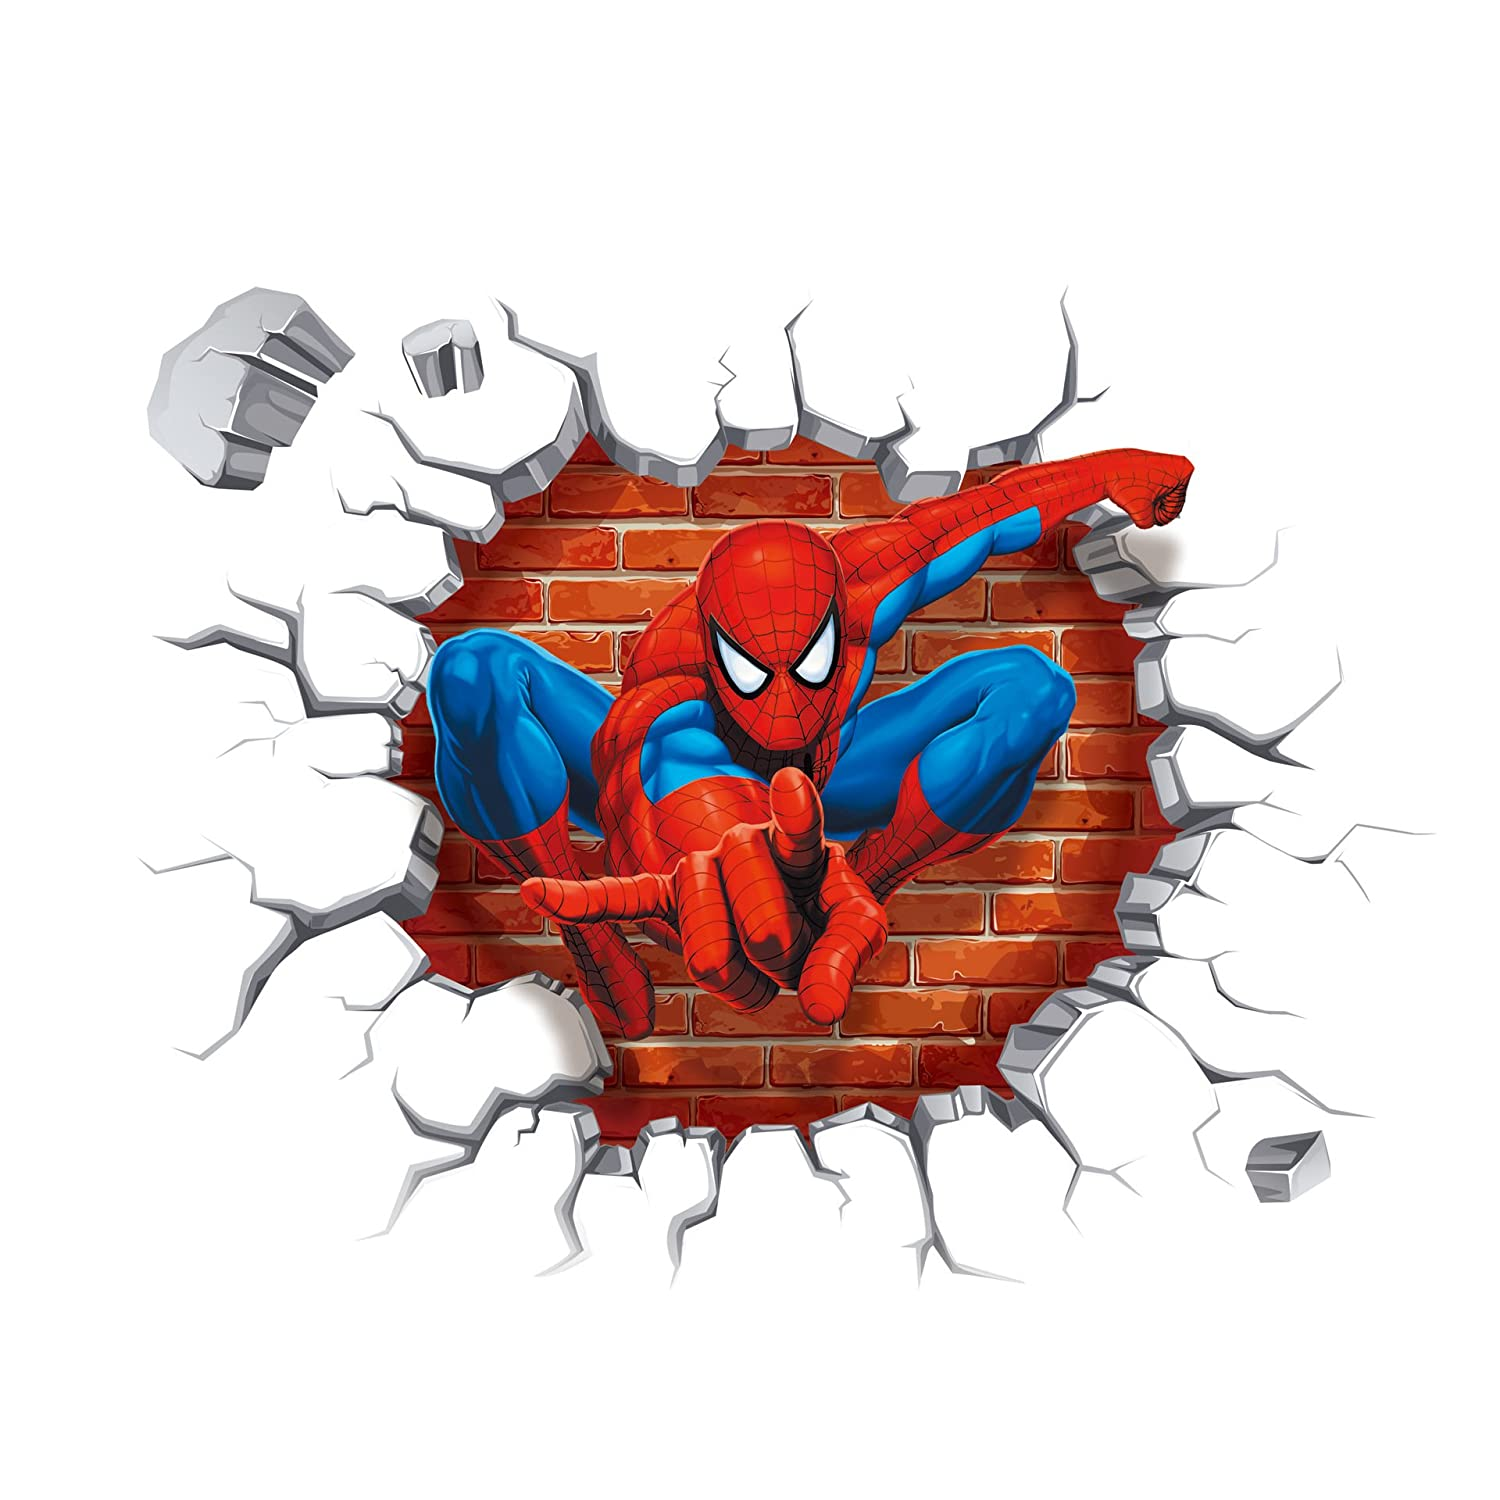 3D Spider Man Cross Wall Stickers for Kids Bedroom Living Room Nursery Background Removable Decor Decals Winhappyhome